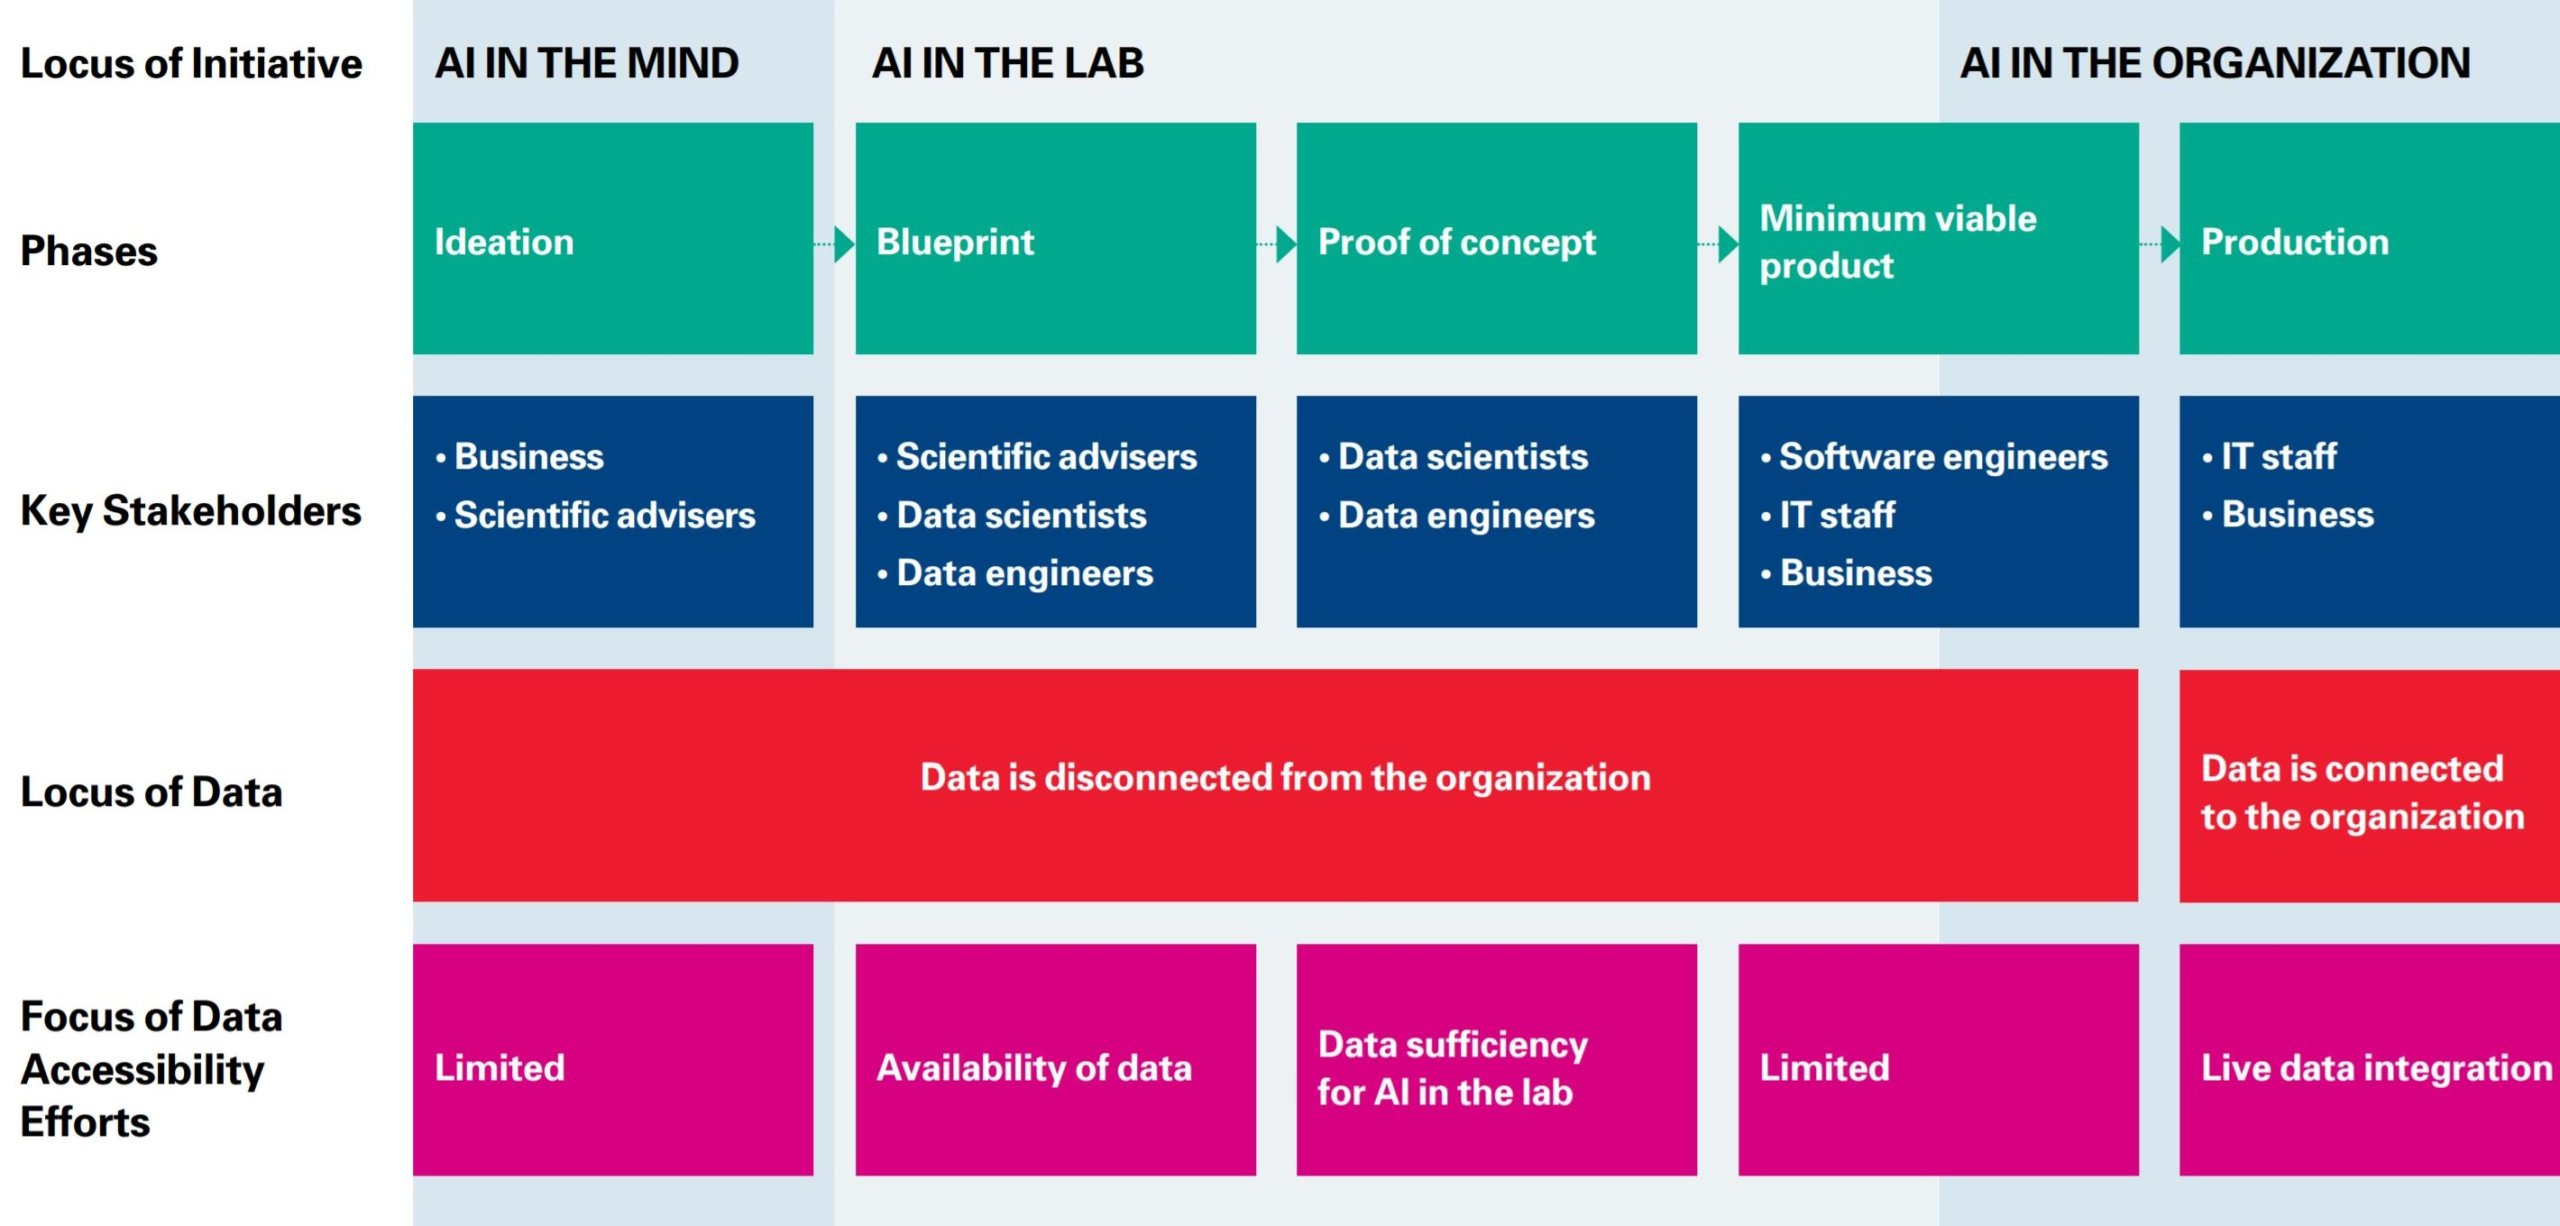 Stakeholders and Data in the AI Life Cycle